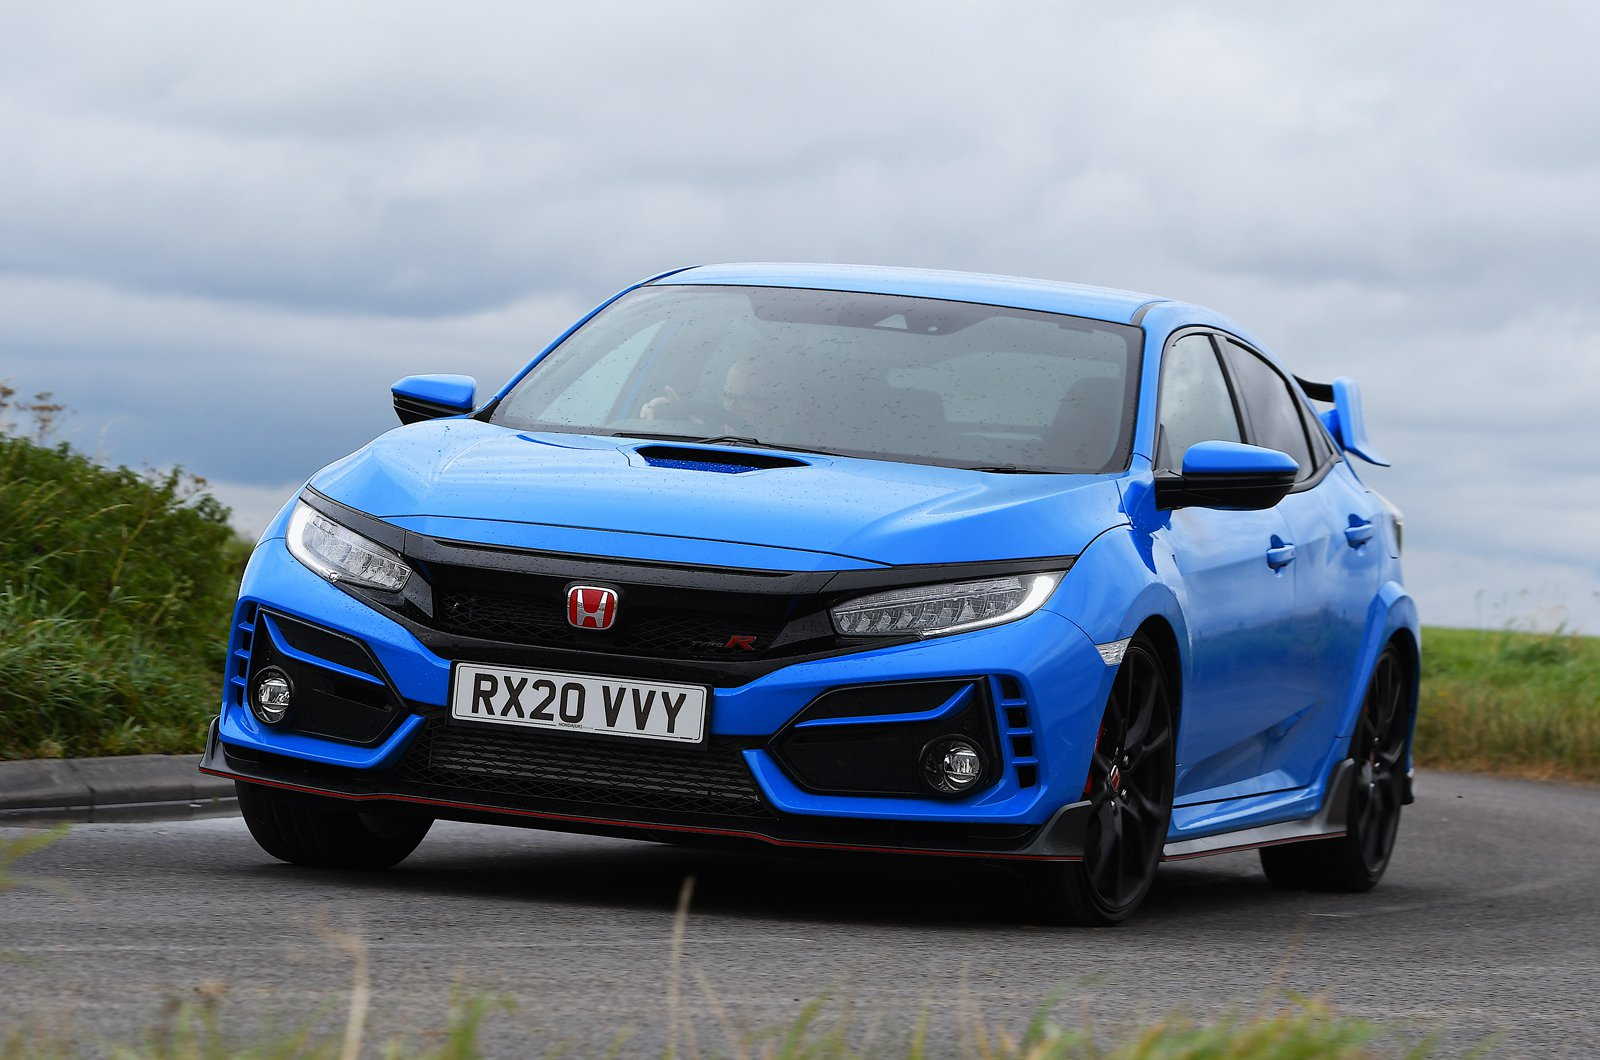 2020 Honda Civic Type R front